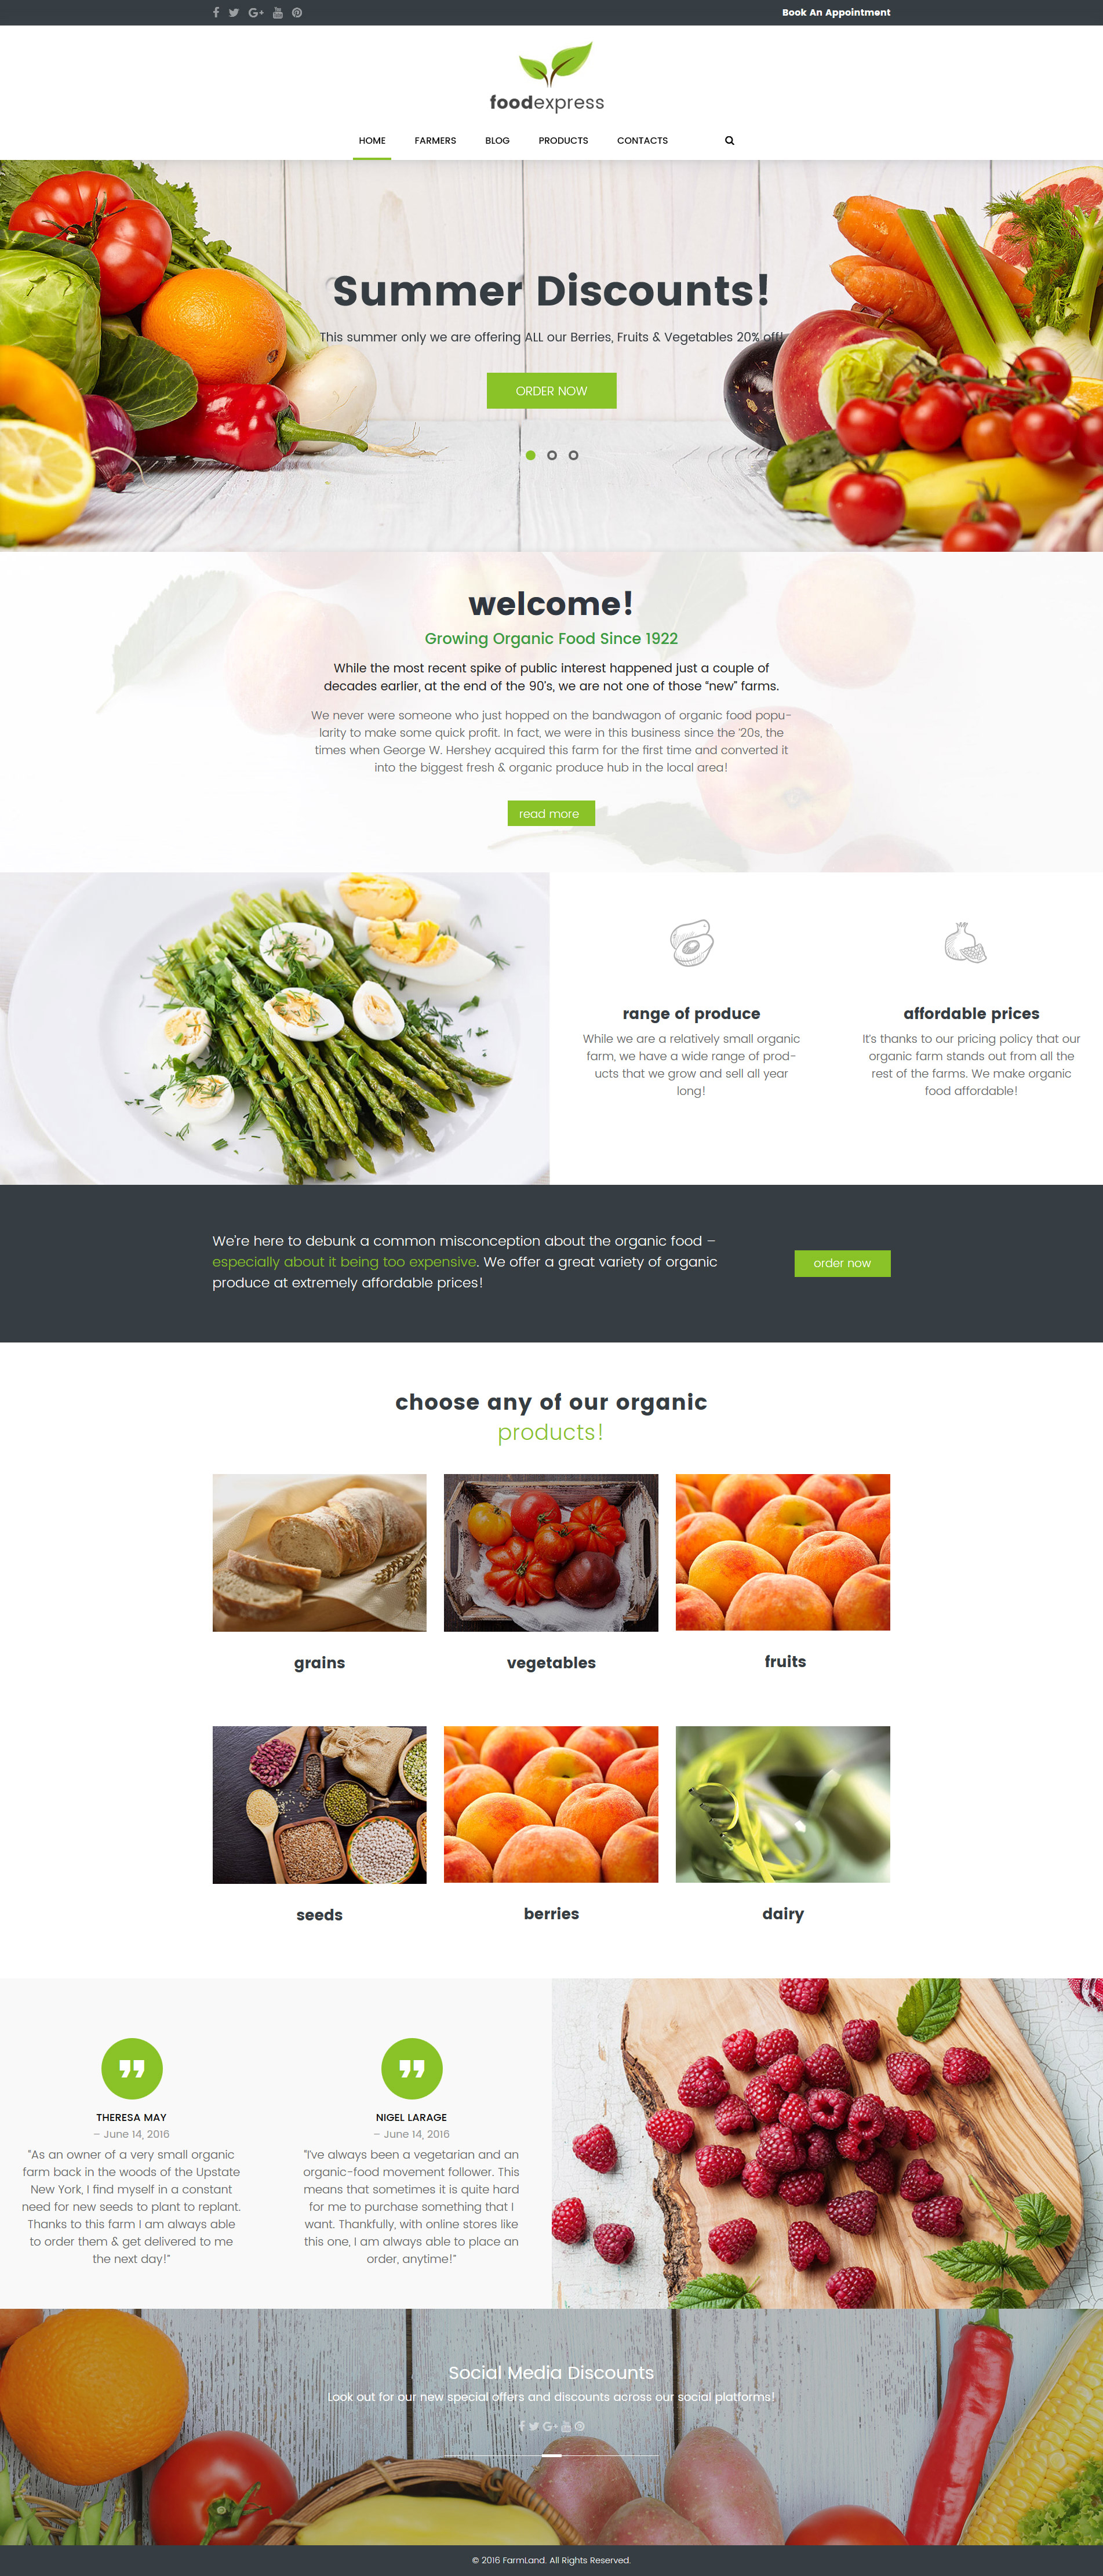 Responsivt Food Express - Agriculture & Farm WordPress-tema #62033 - skärmbild